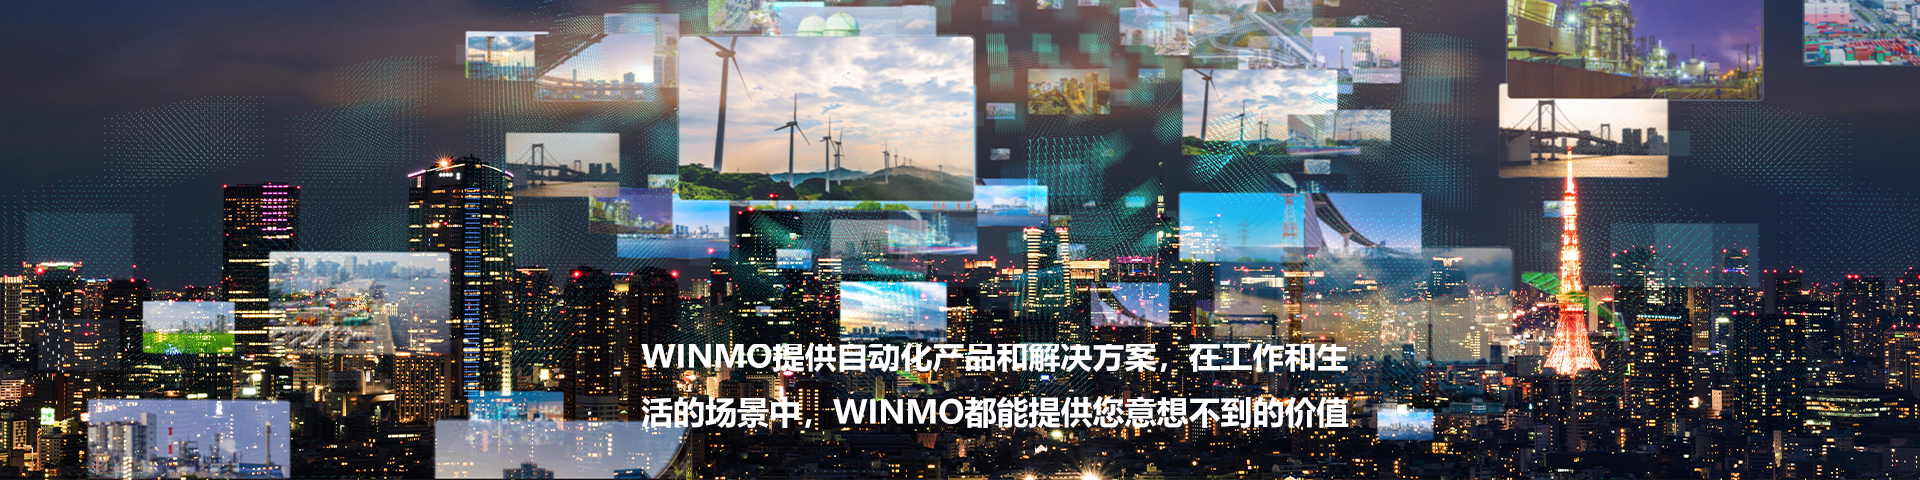 http://www.winmo.top/data/upload/202101/20210105133748_228.png